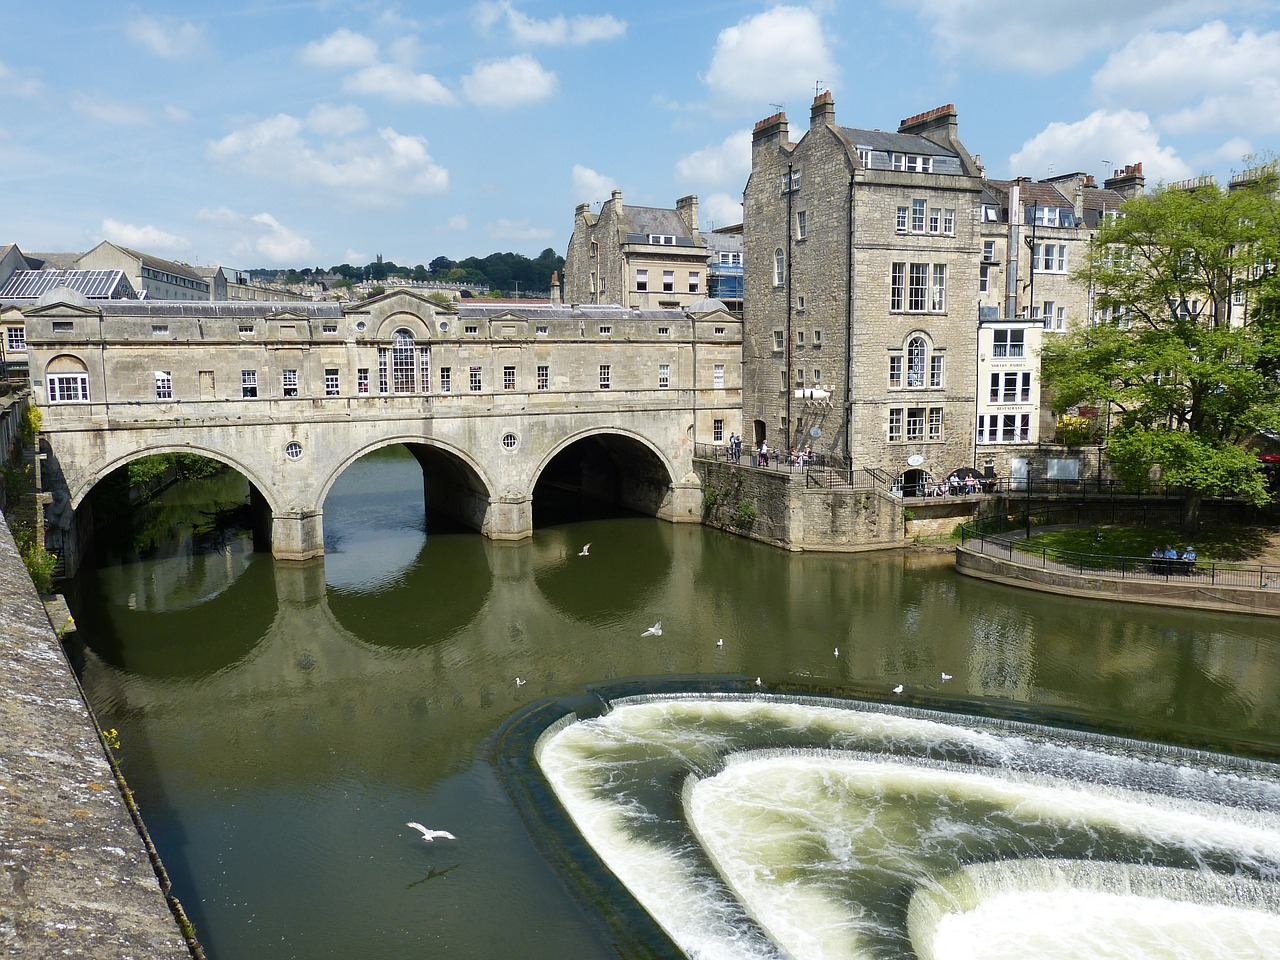 Good day trips from London. Go to Bath or one of these other interesting cities for a lovely day trip from London.